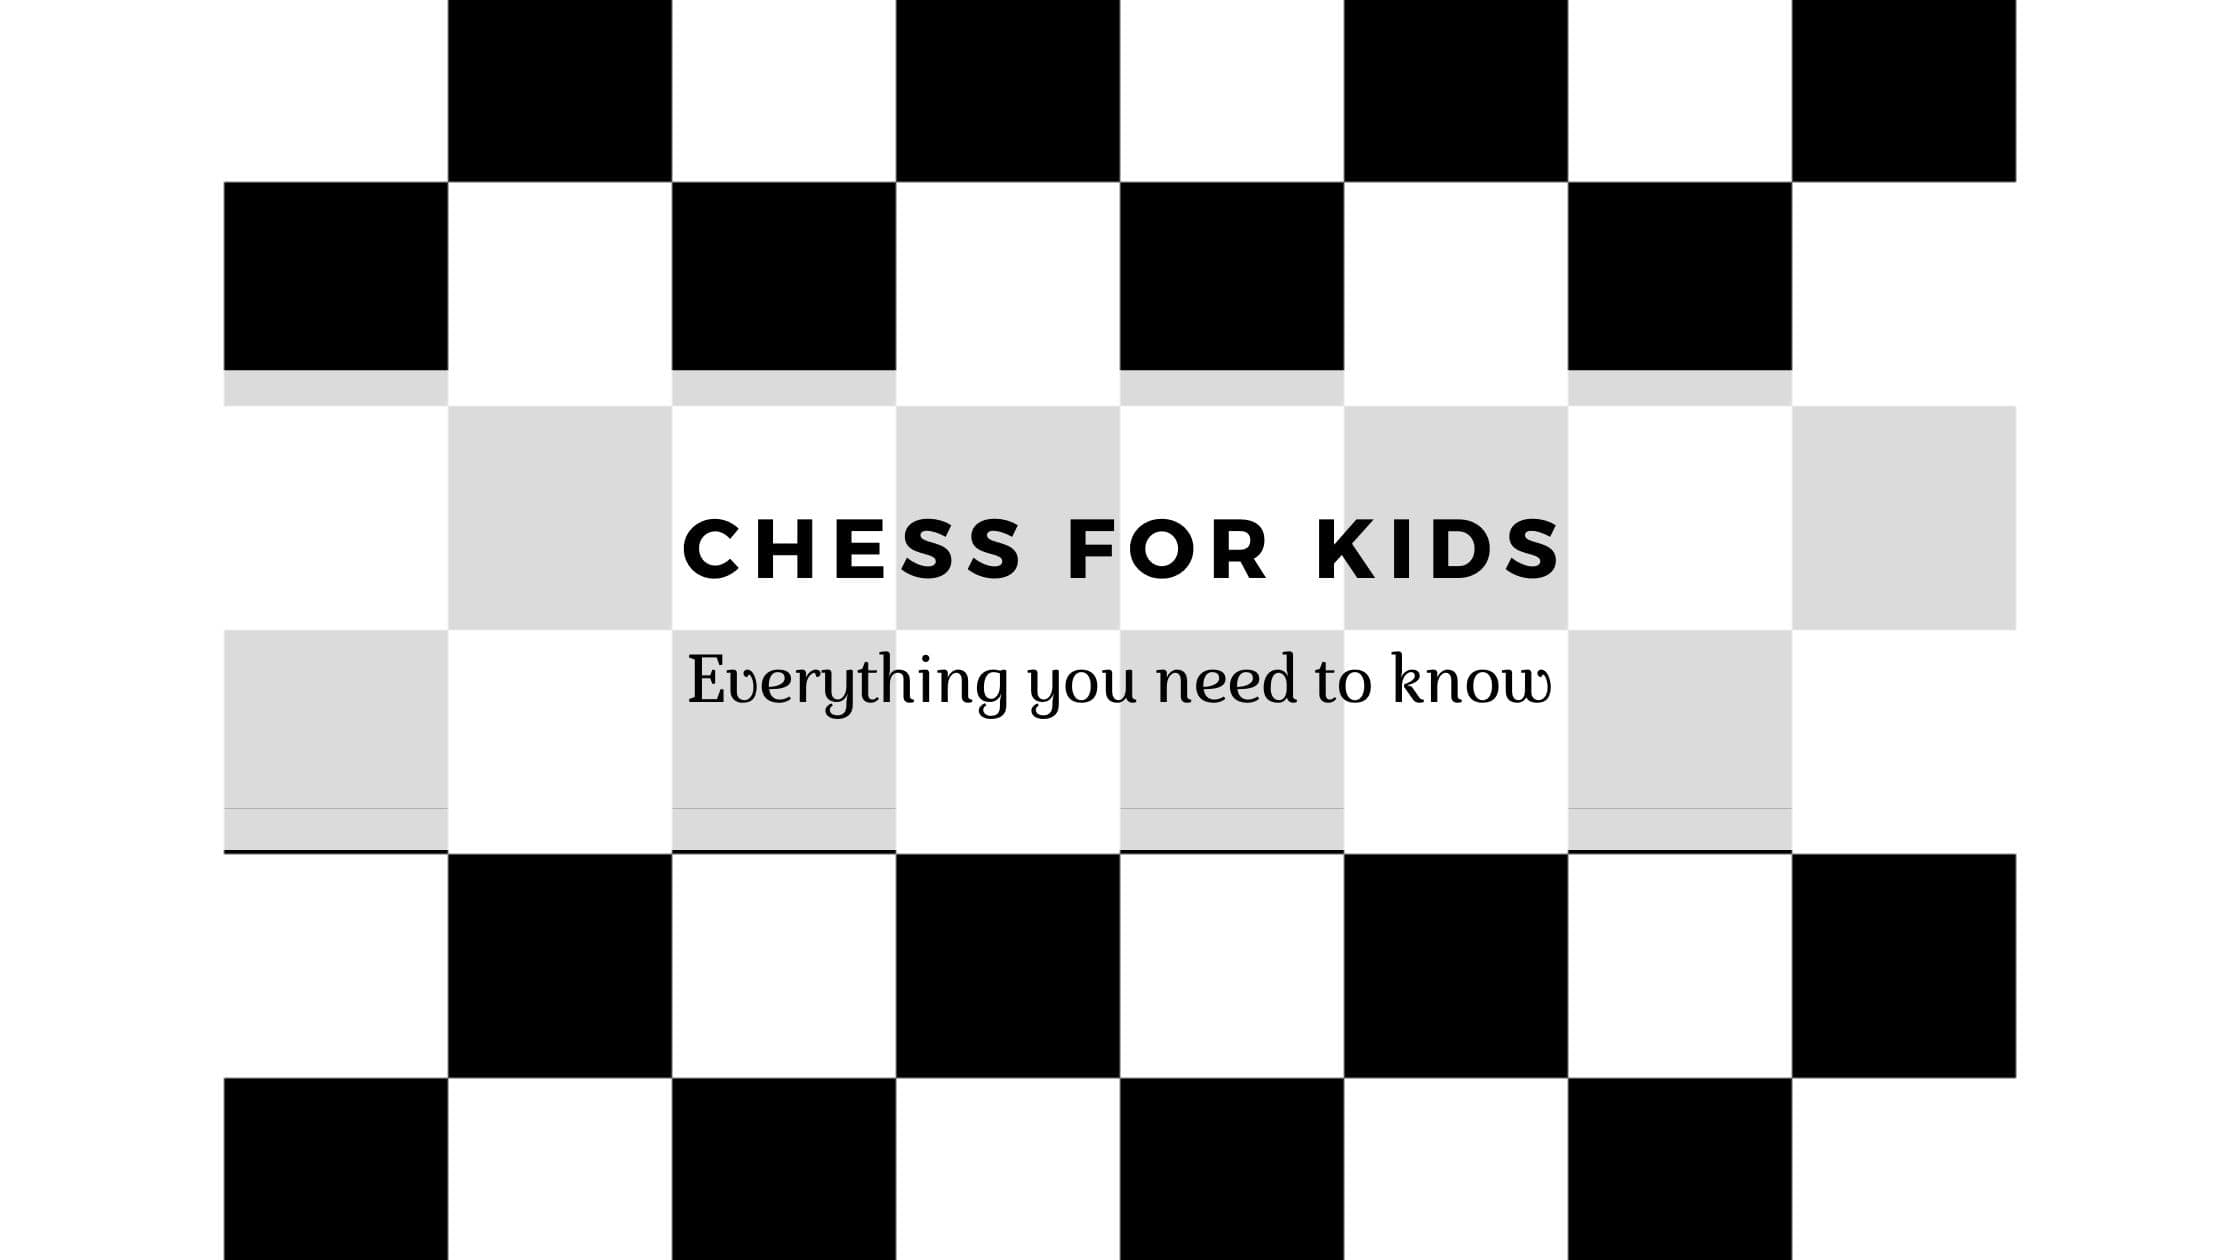 Chess For Kids: Everything you need to know